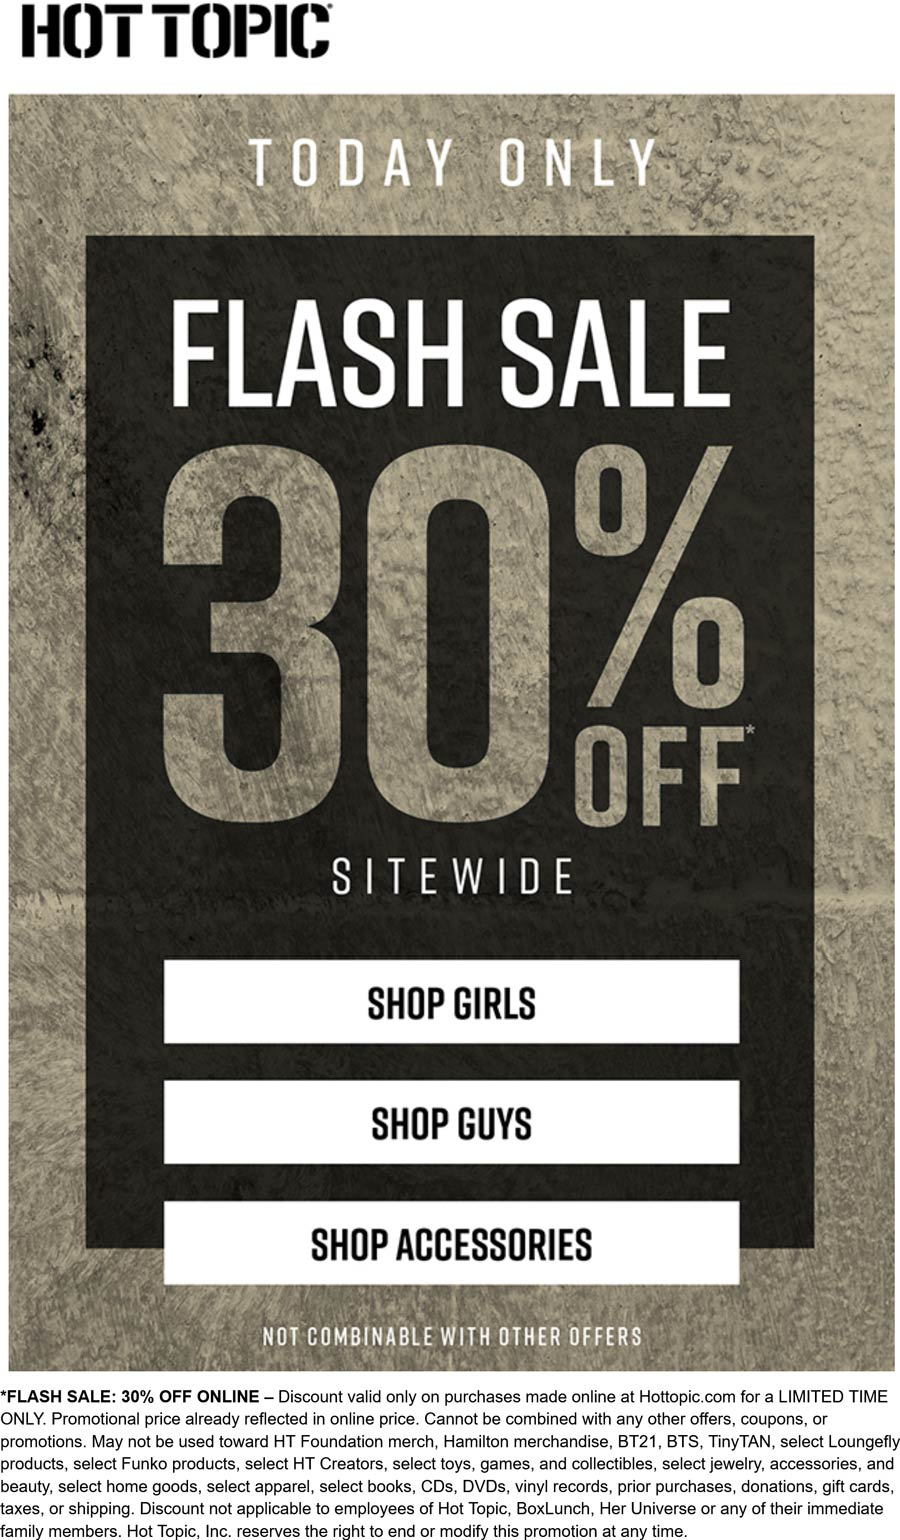 Hot Topic stores Coupon  30% off everything online today at Hot Topic #hottopic